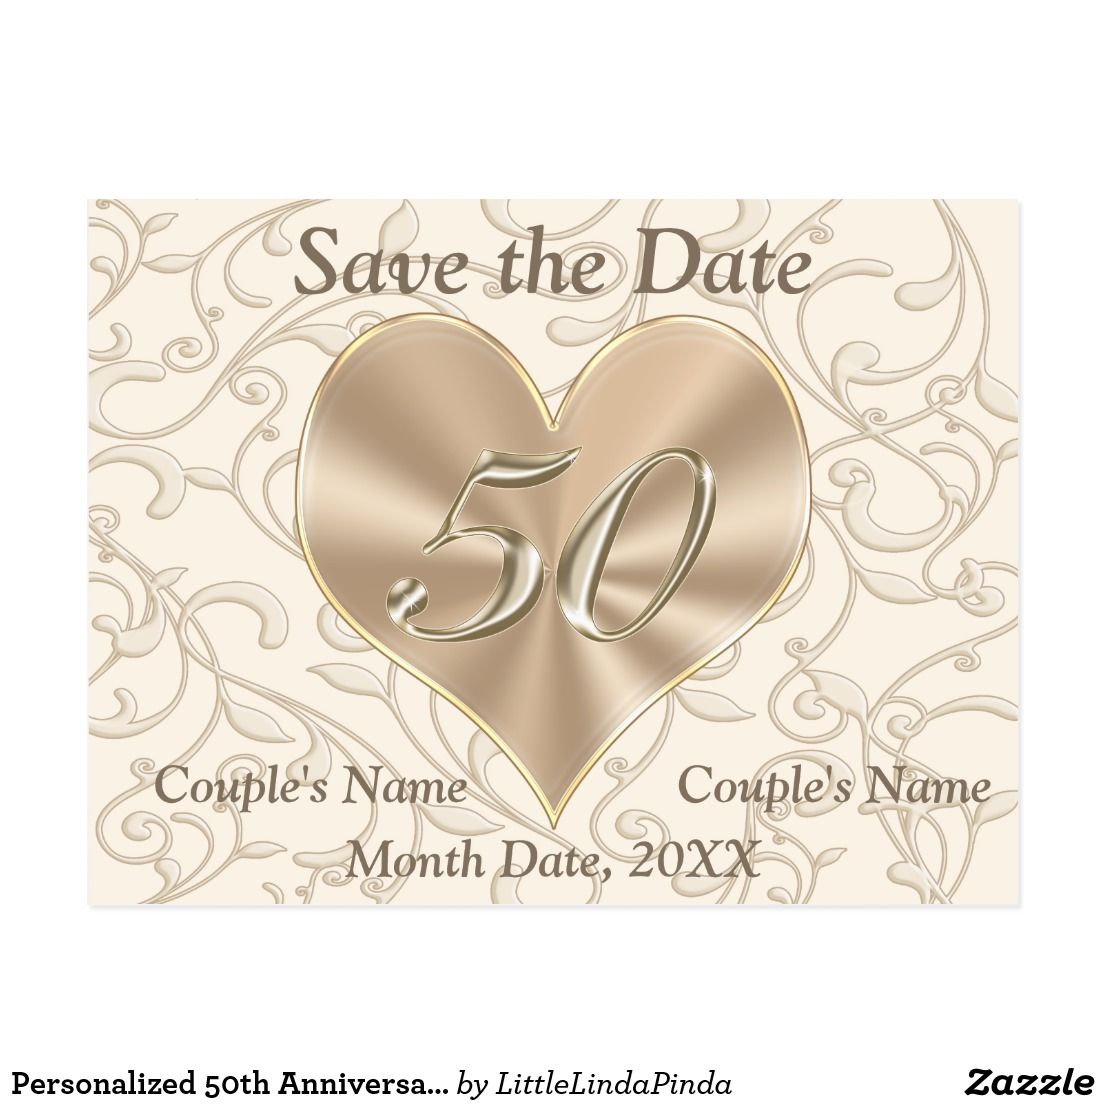 Personalized 50th Anniversary Save the Date Cards Zazzle